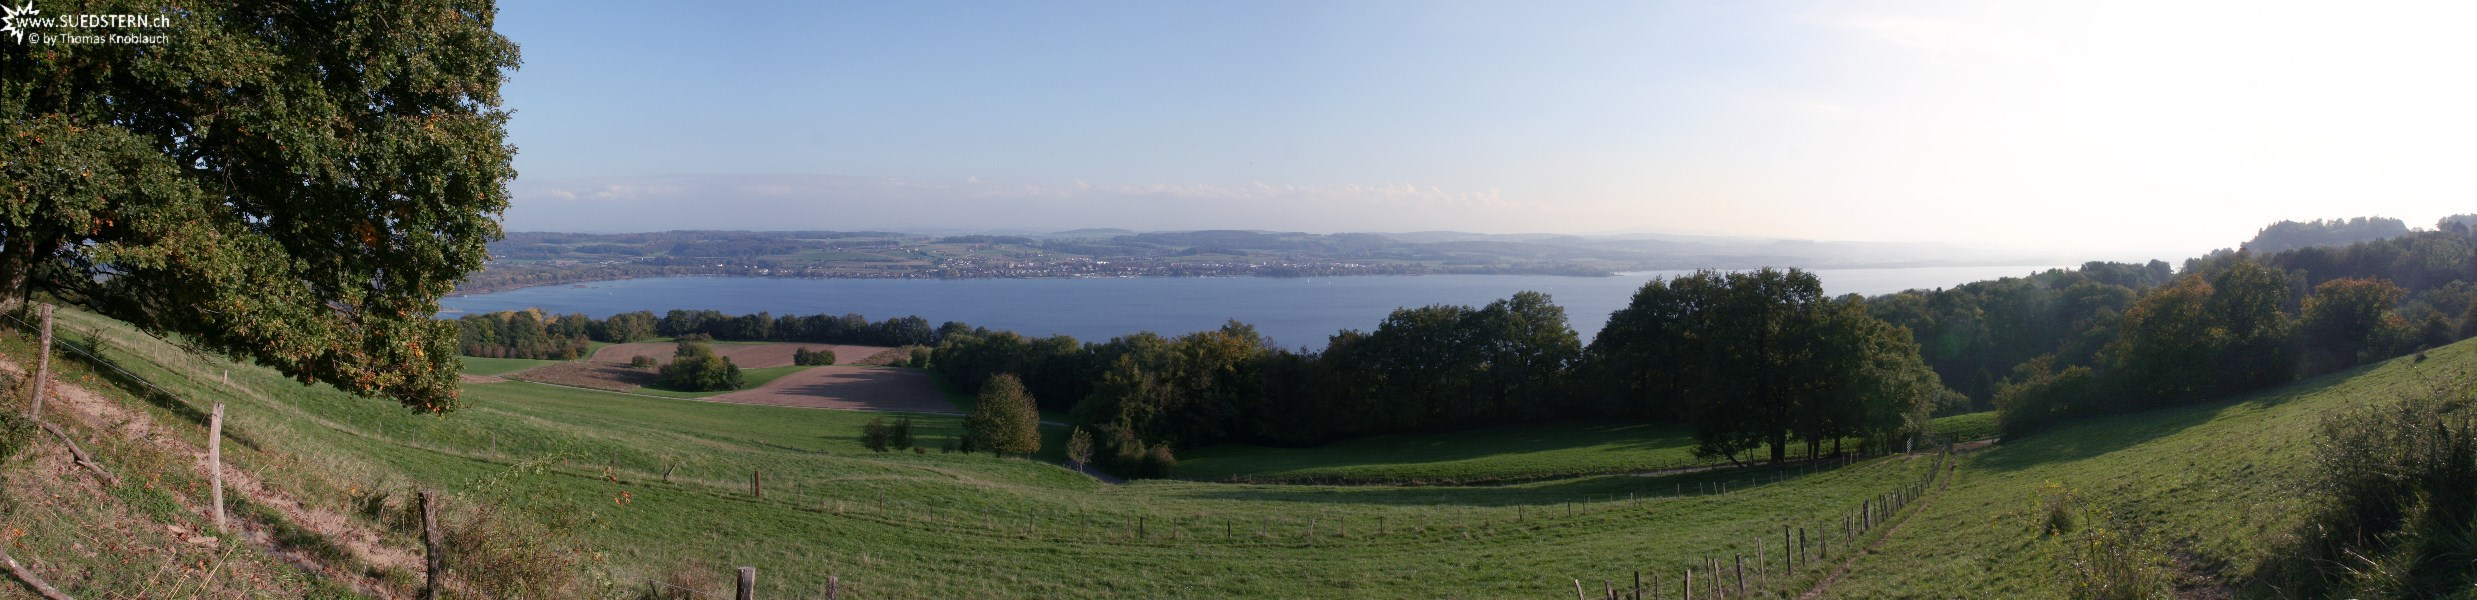 2007-10-06 - Panoramic view of Murtensee 2